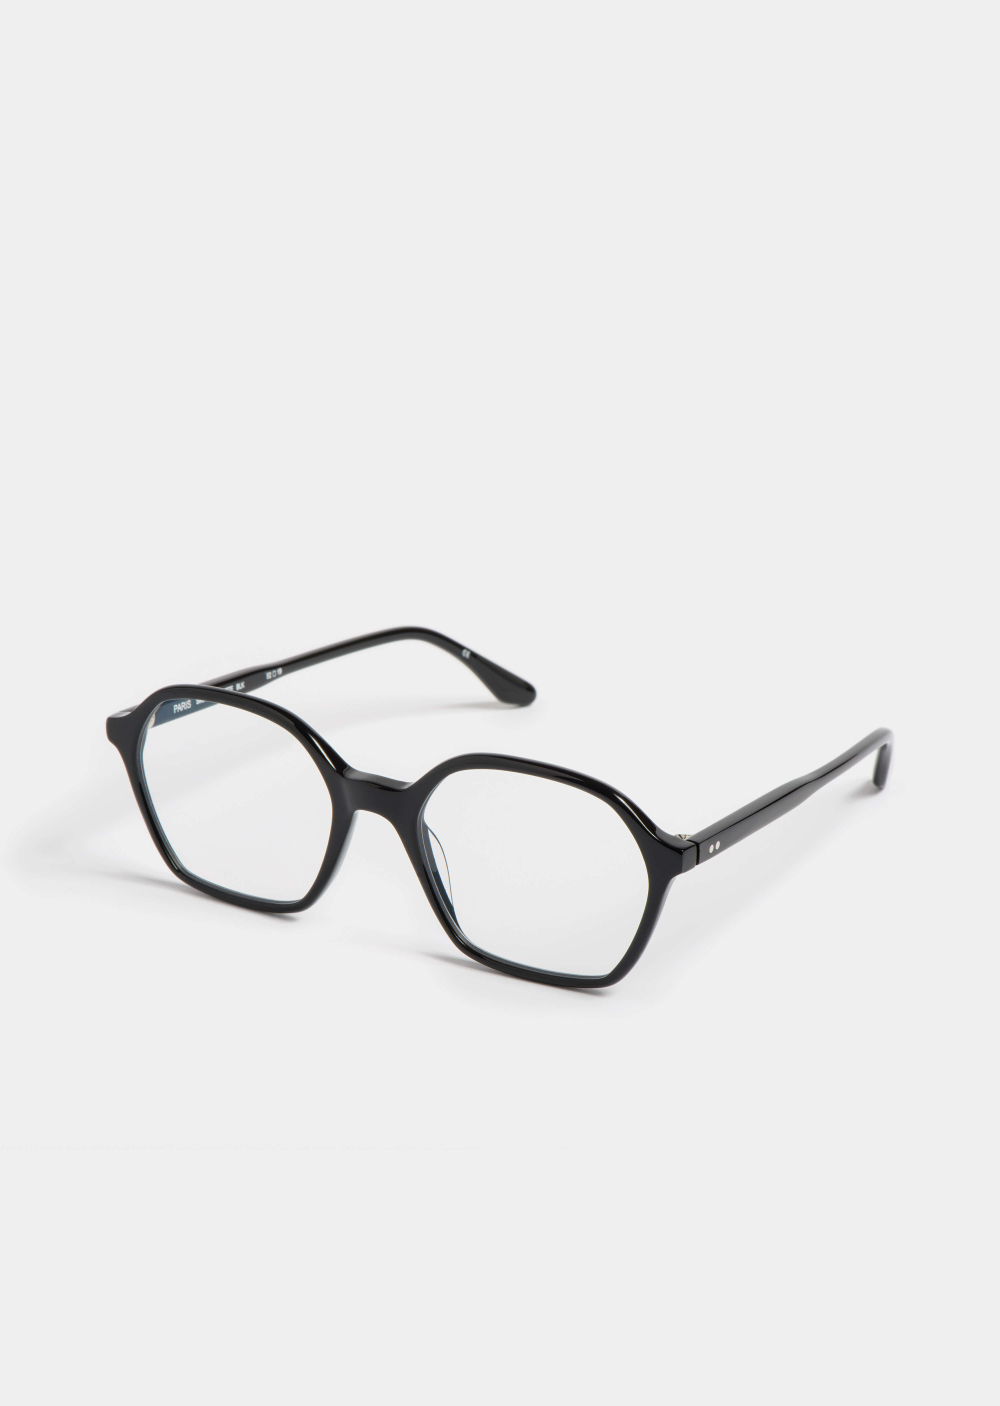 PETER AND MAY -  - LT5 Colette RX black